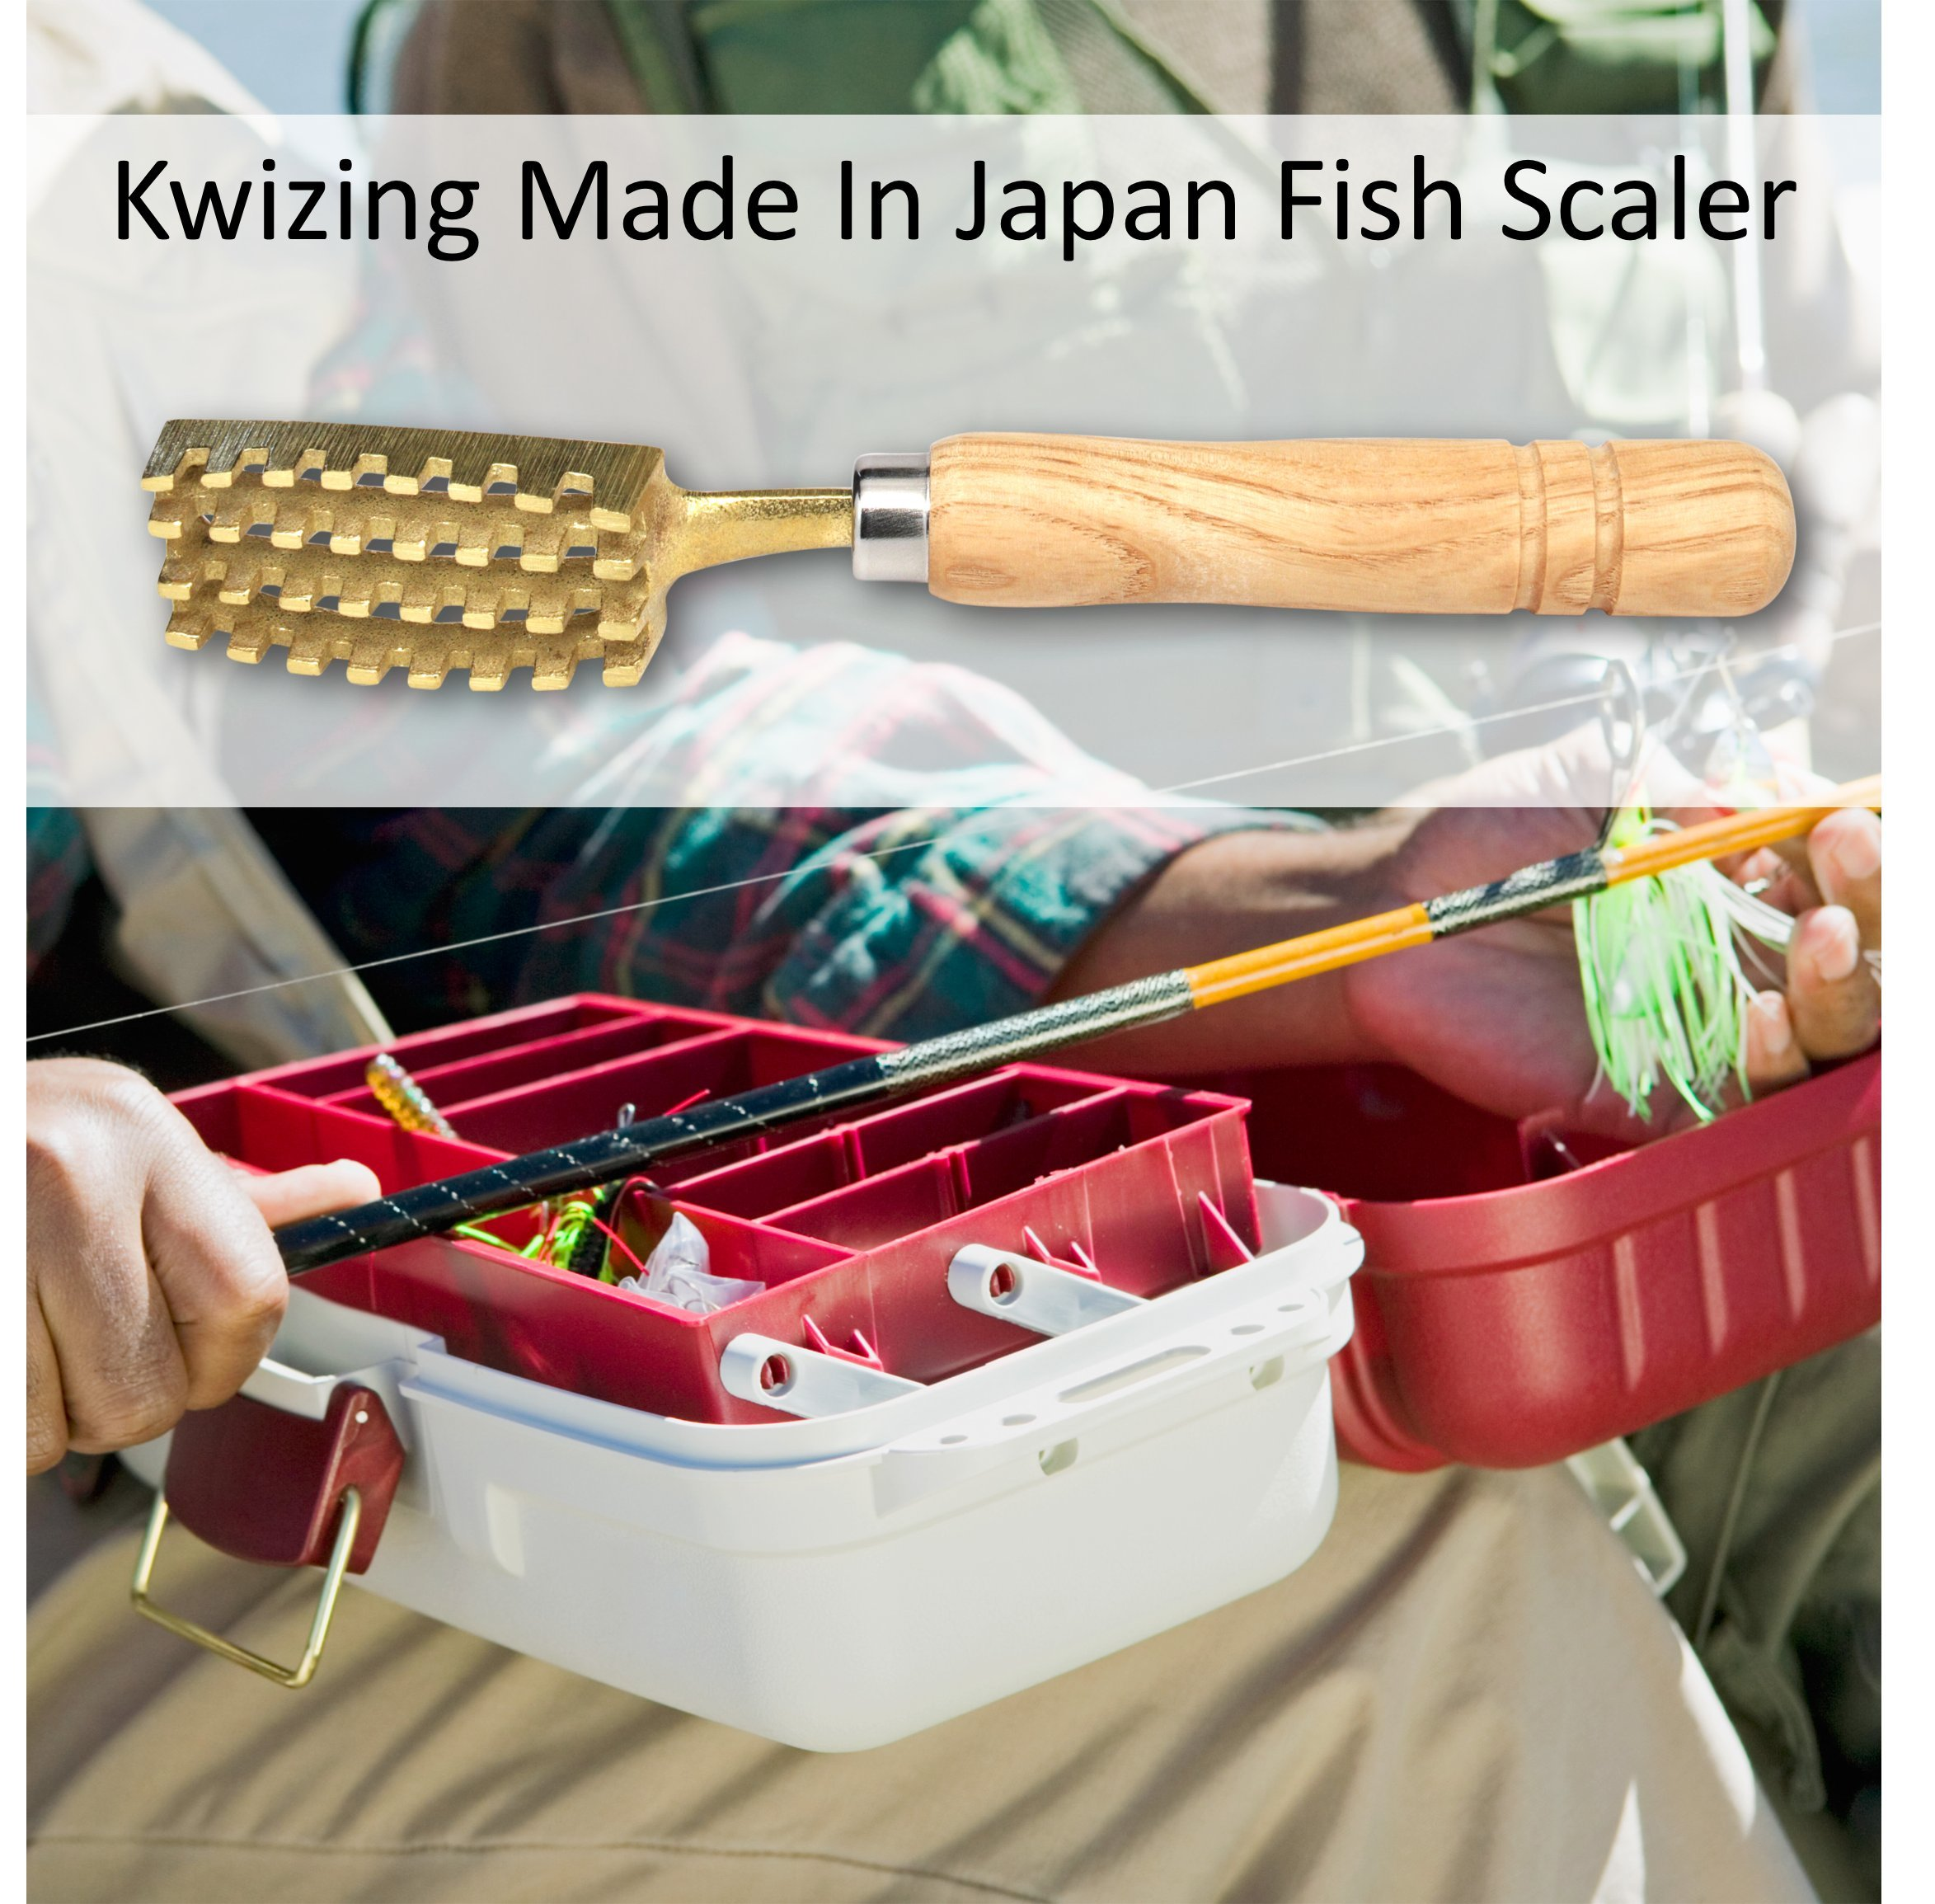 Kwizing Made in Japan Fish Scaler Brush with Brass Serrated Sawtooth and Ergonomic Wooden Handle - Easily Remove Fish Scales Without Fuss Or Mess - Handcrafted by Japanese Artisans by Kwizing (Image #6)